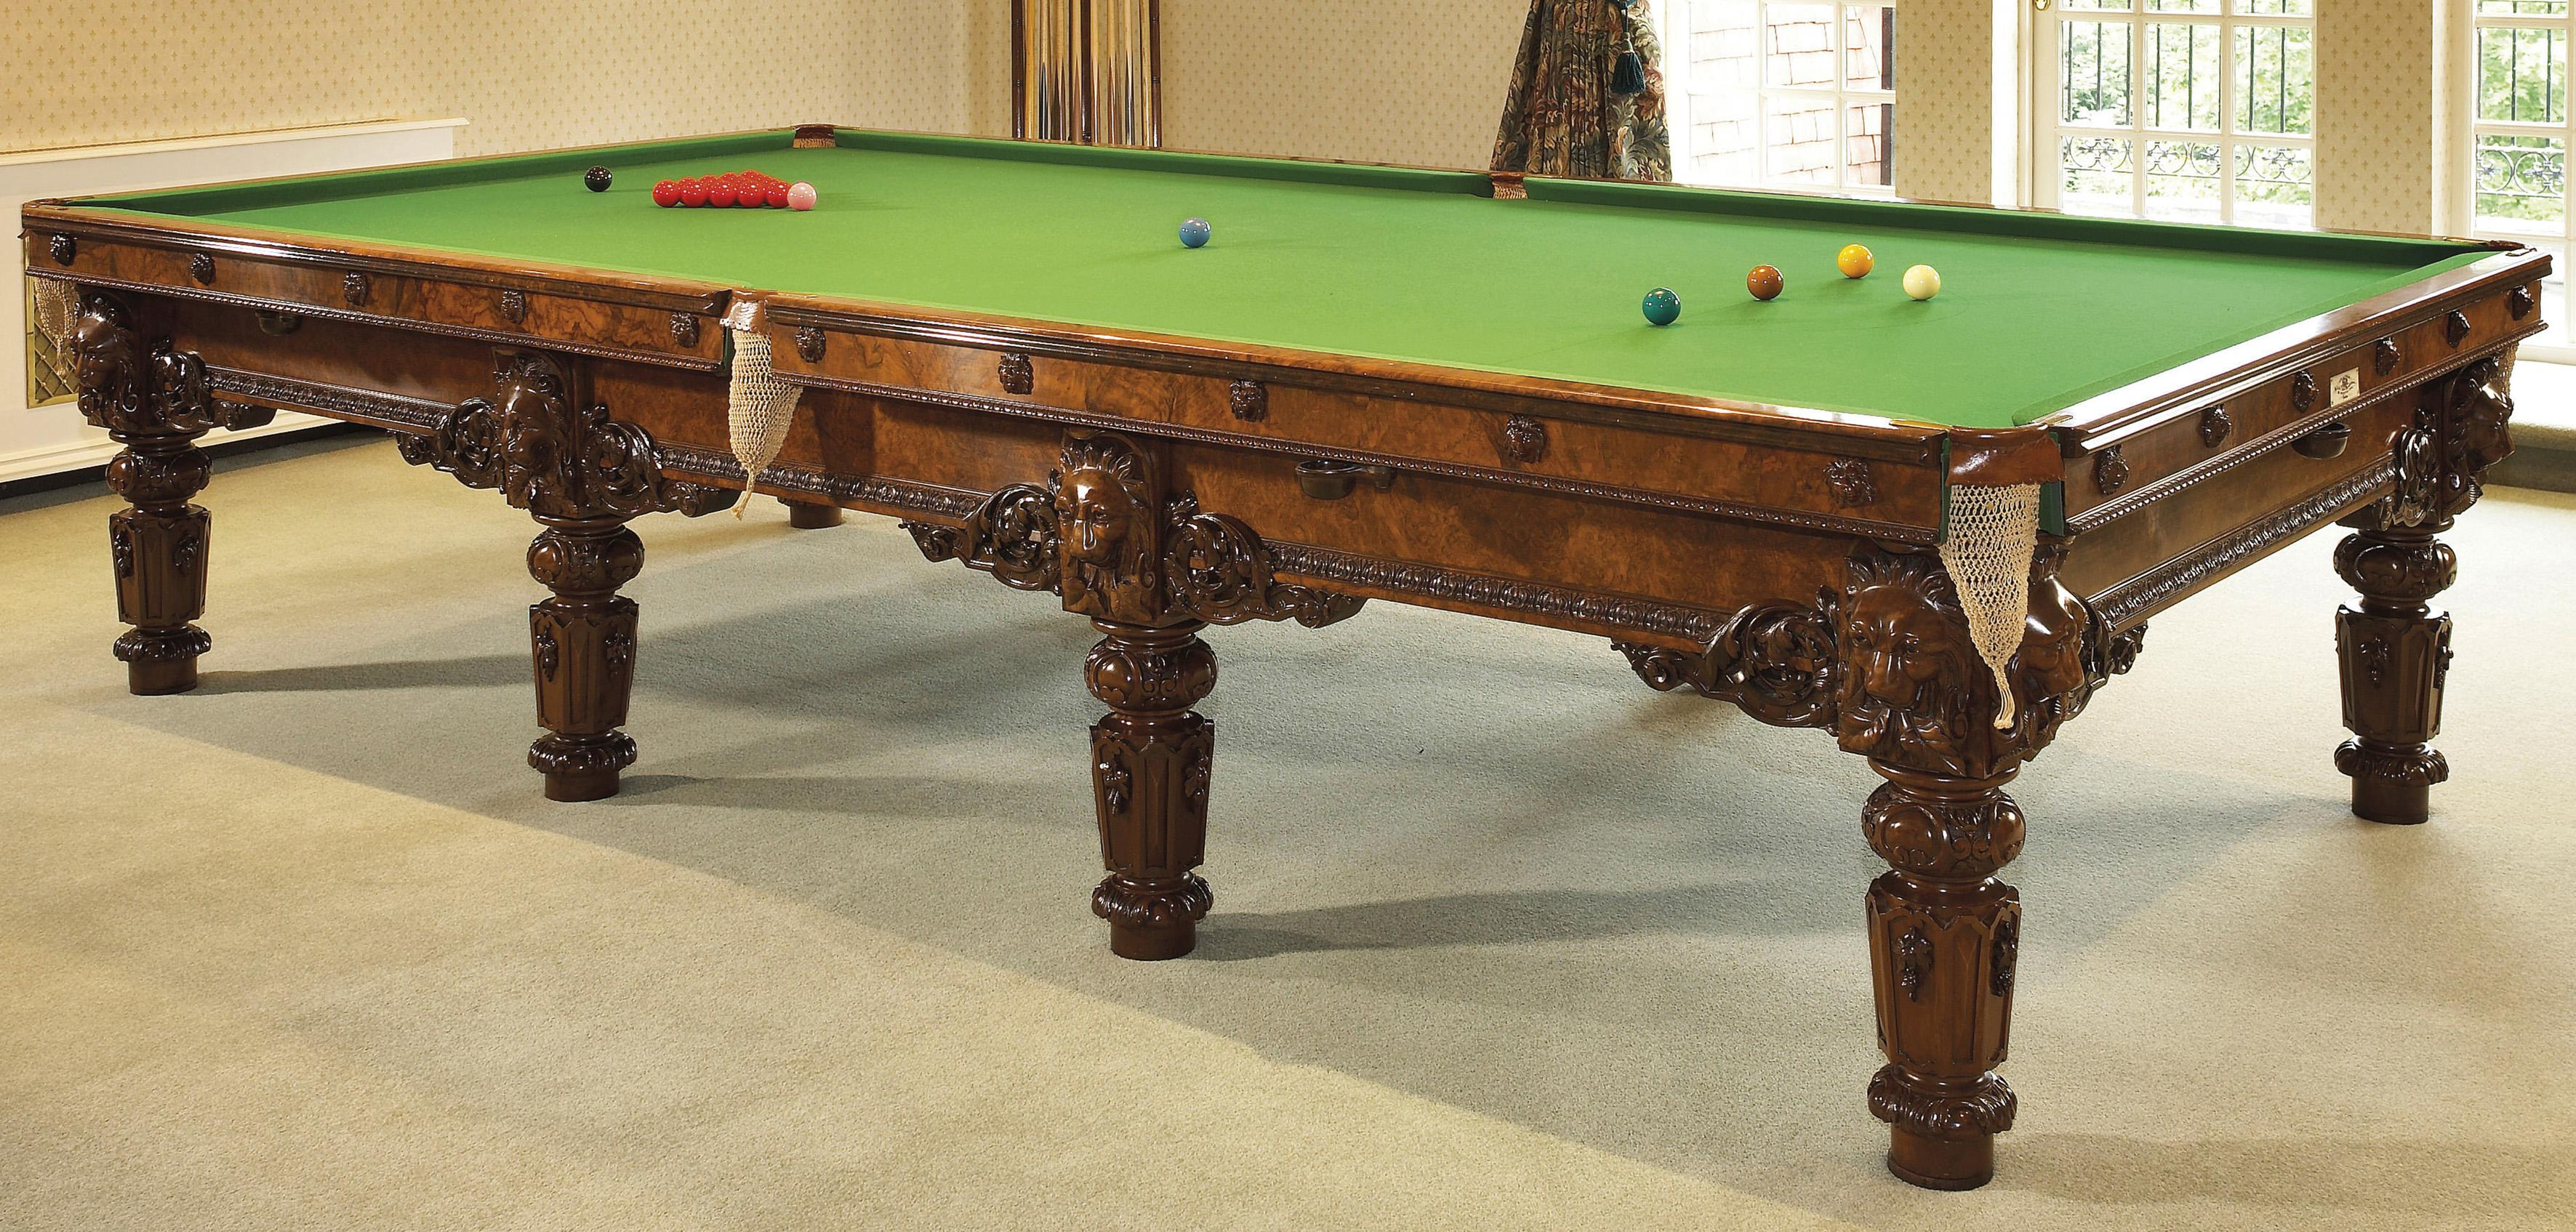 Carved Walnut Full Size Billiard Table And Accessories By Cox U0026 Yeman